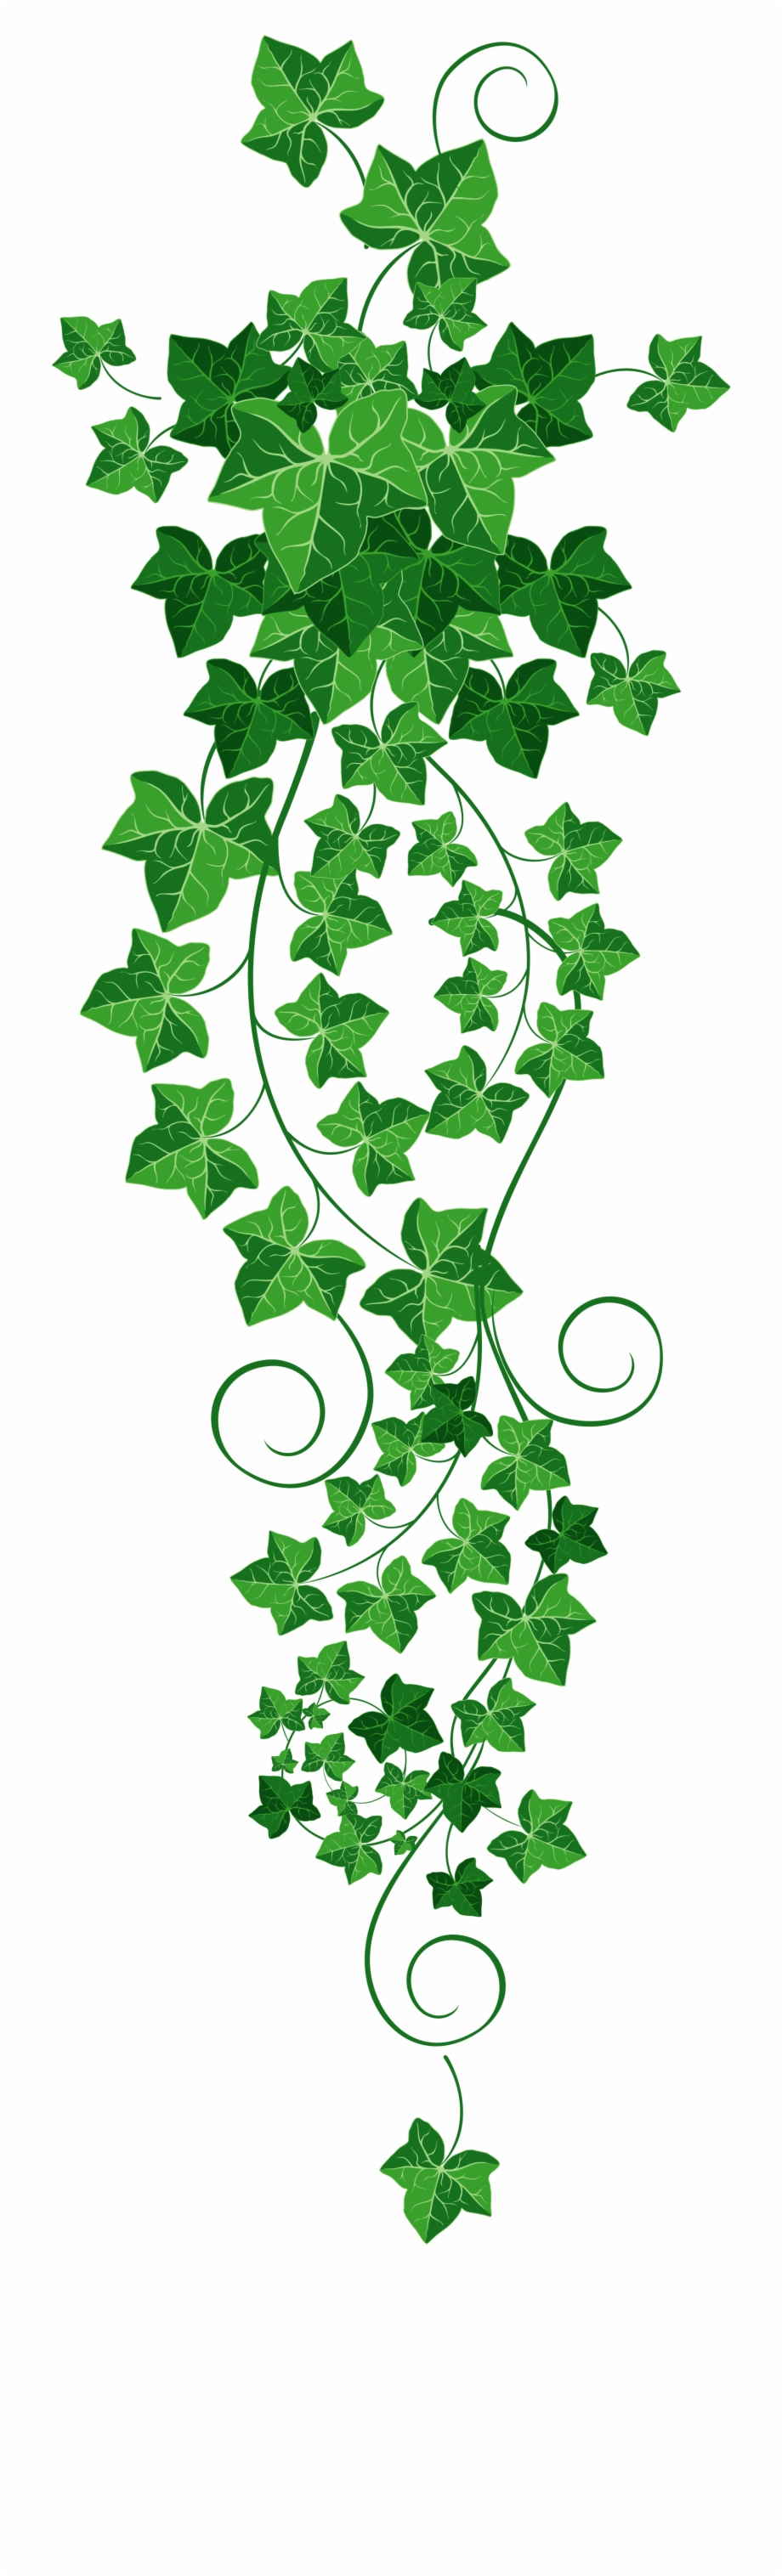 Vine png clipart picture black and white library Free Ivy Vine Png, Download Free Clip Art, Free Clip Art on ... picture black and white library